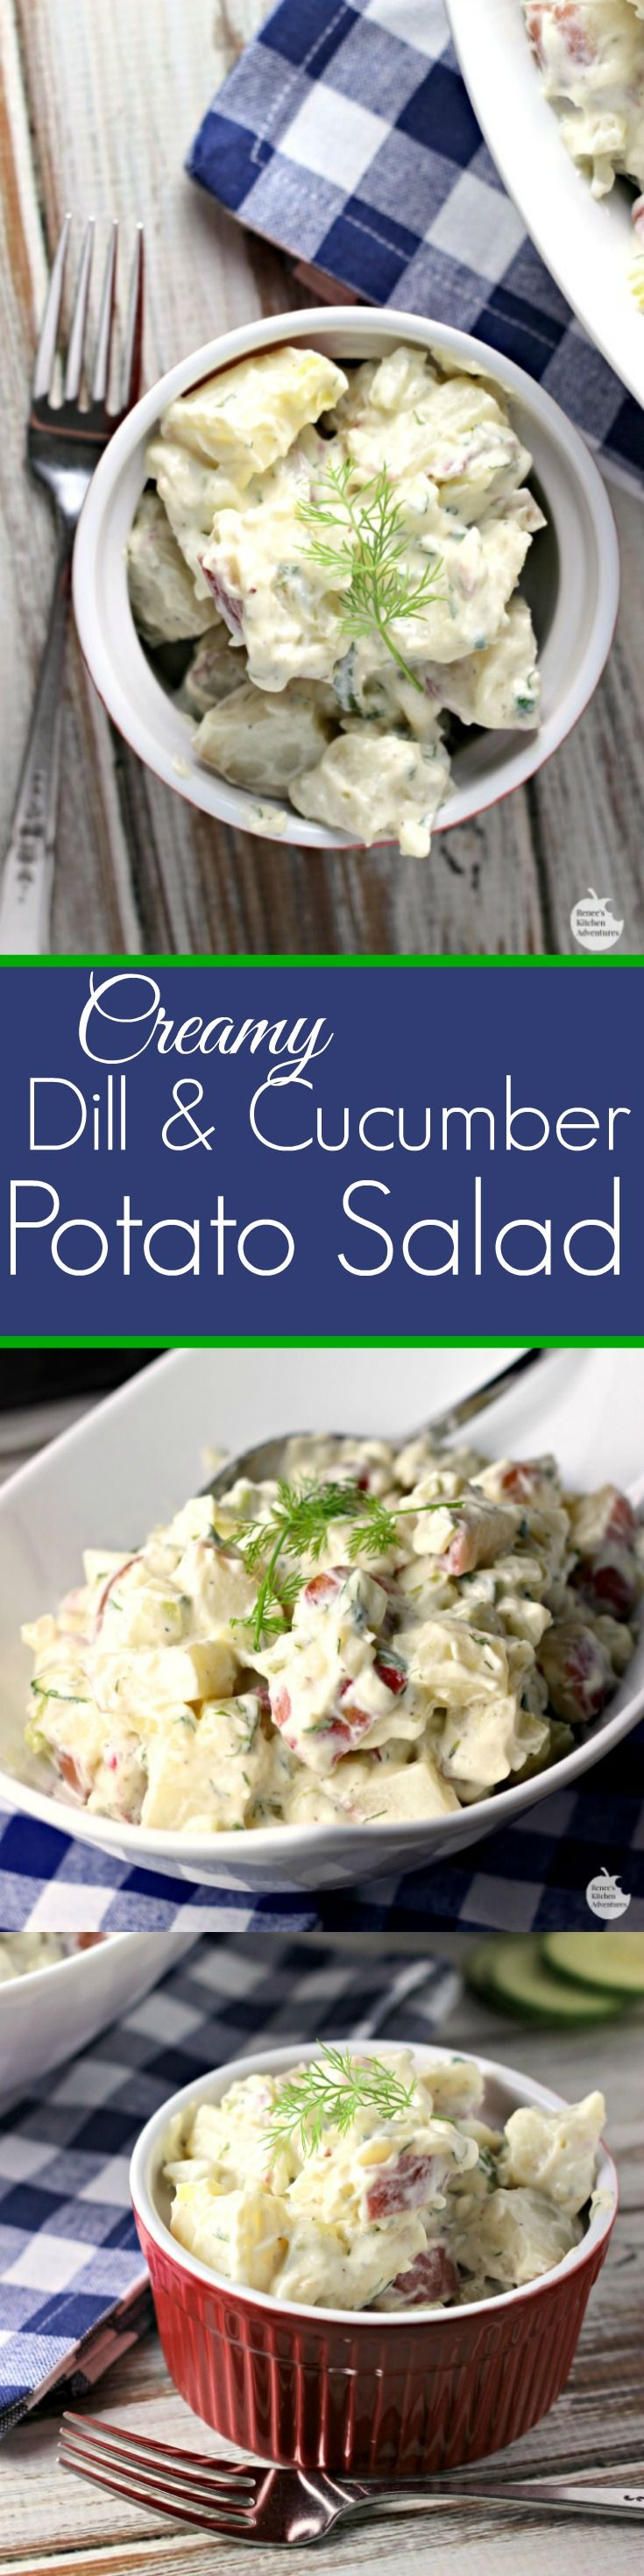 Creamy Dill and Cucumber Potato Salad | by Renee's Kitchen Adventures - an easy healthy recipe for a twist on classic potato salad. So good!!!